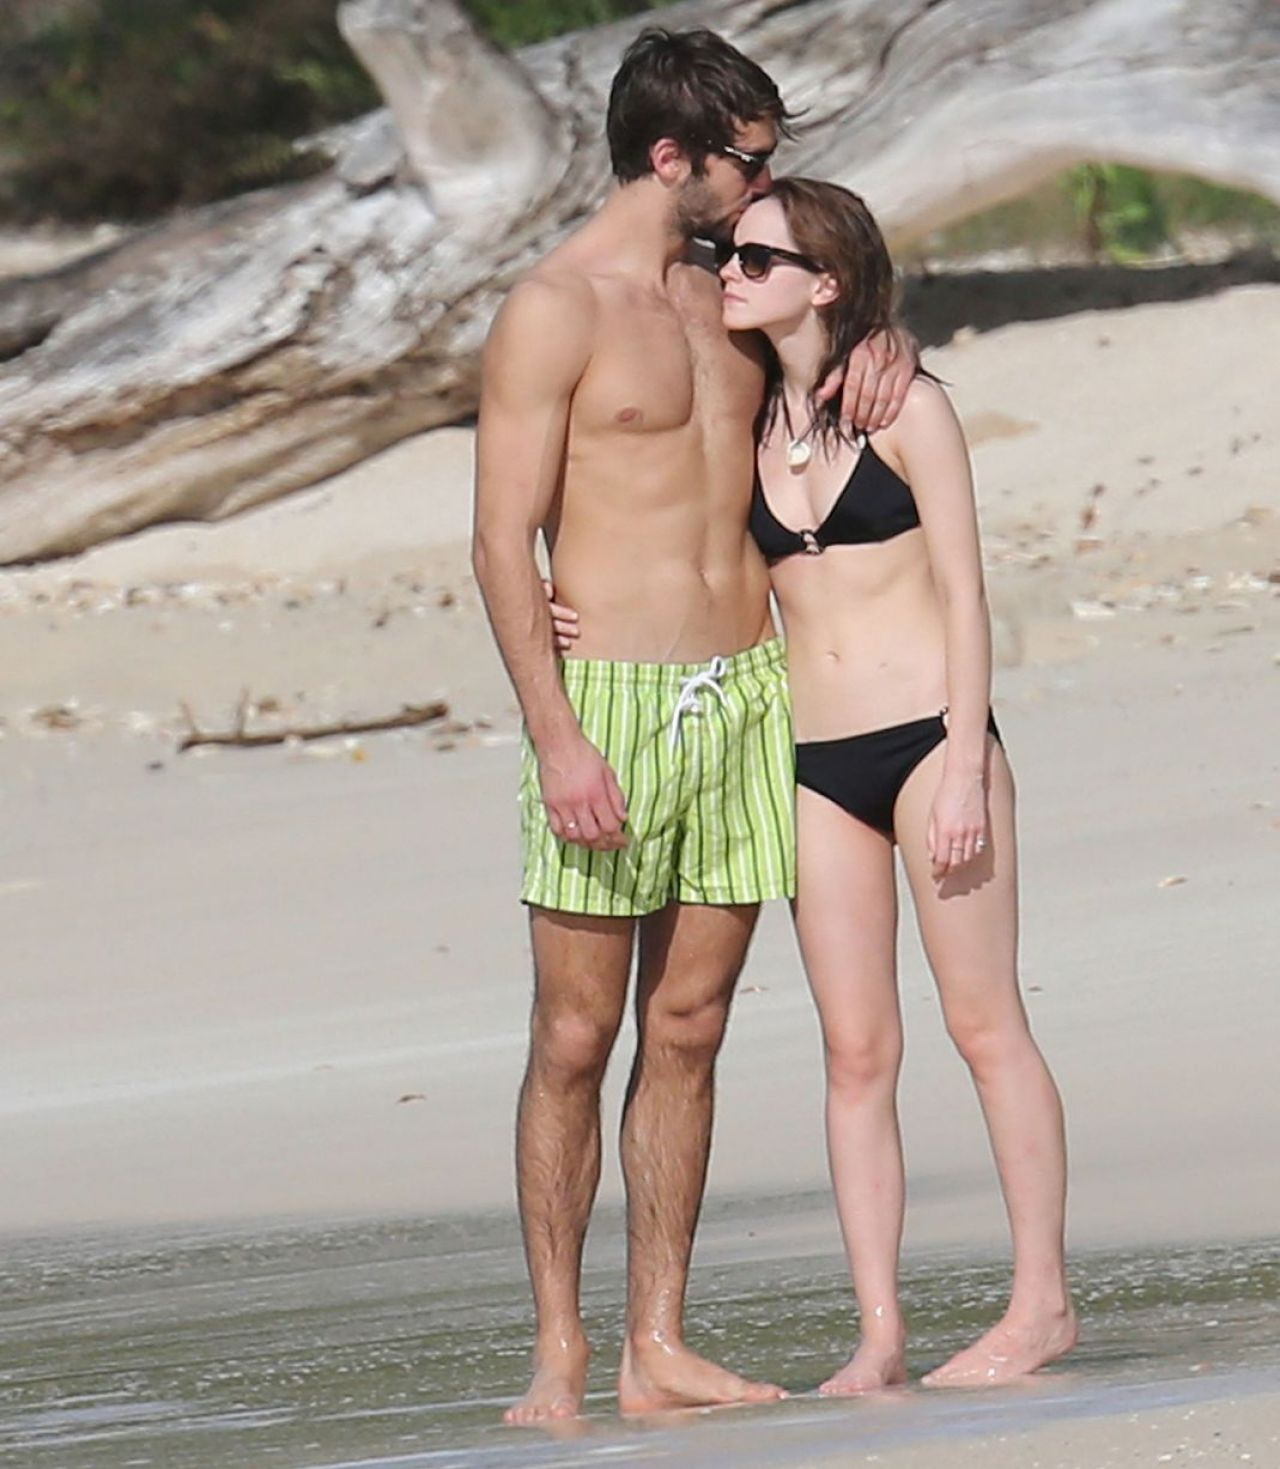 Emma Watson in a Bikini - With New boyfriend on Holiday. January 2014